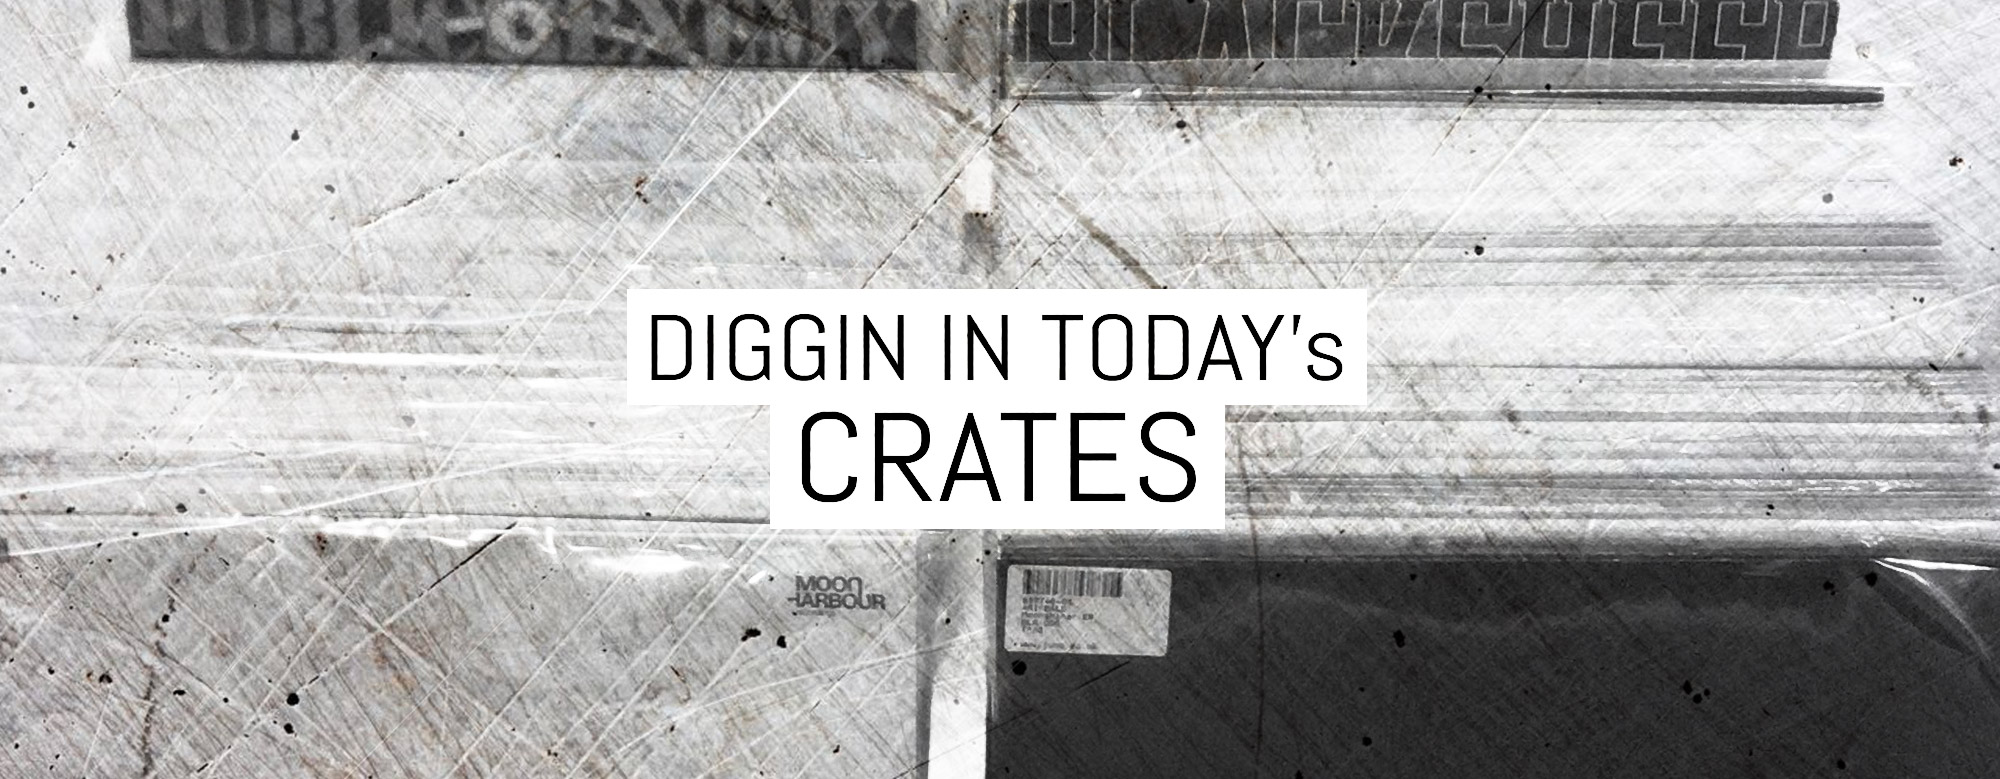 Crate Digger Evolution